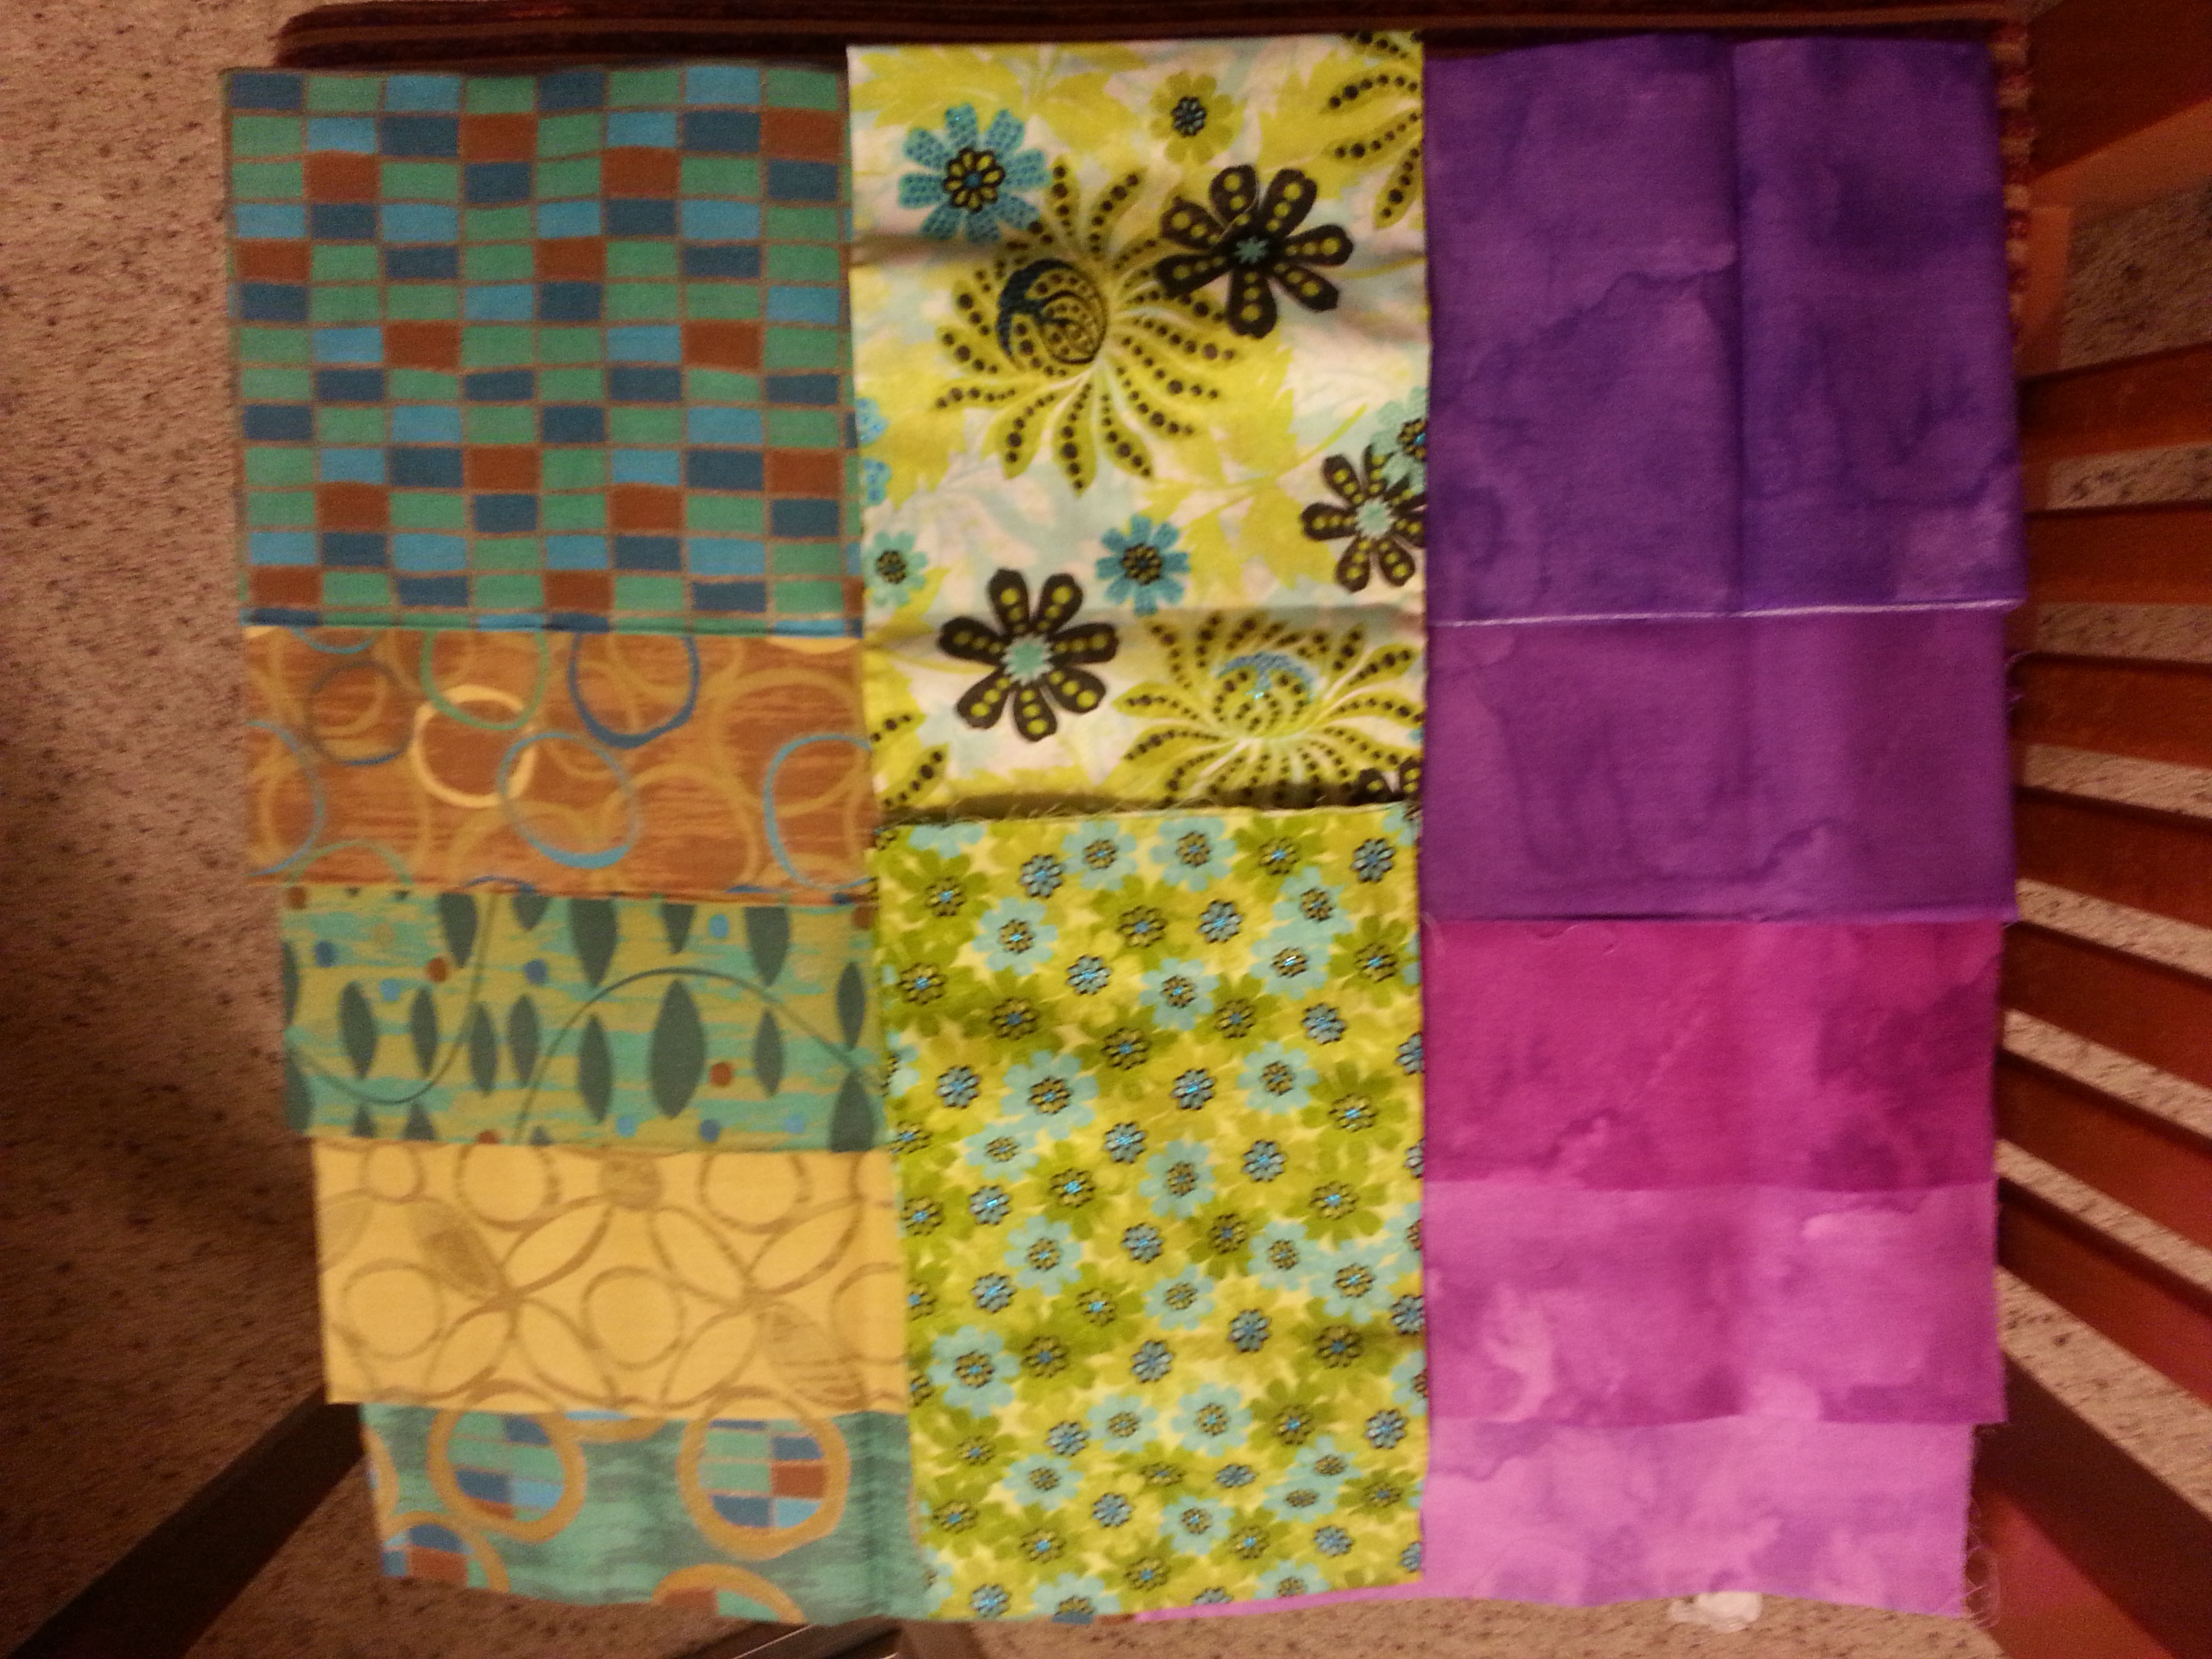 Remaining fabric from stacks...they may just turn into another Dutchman's Puzzle